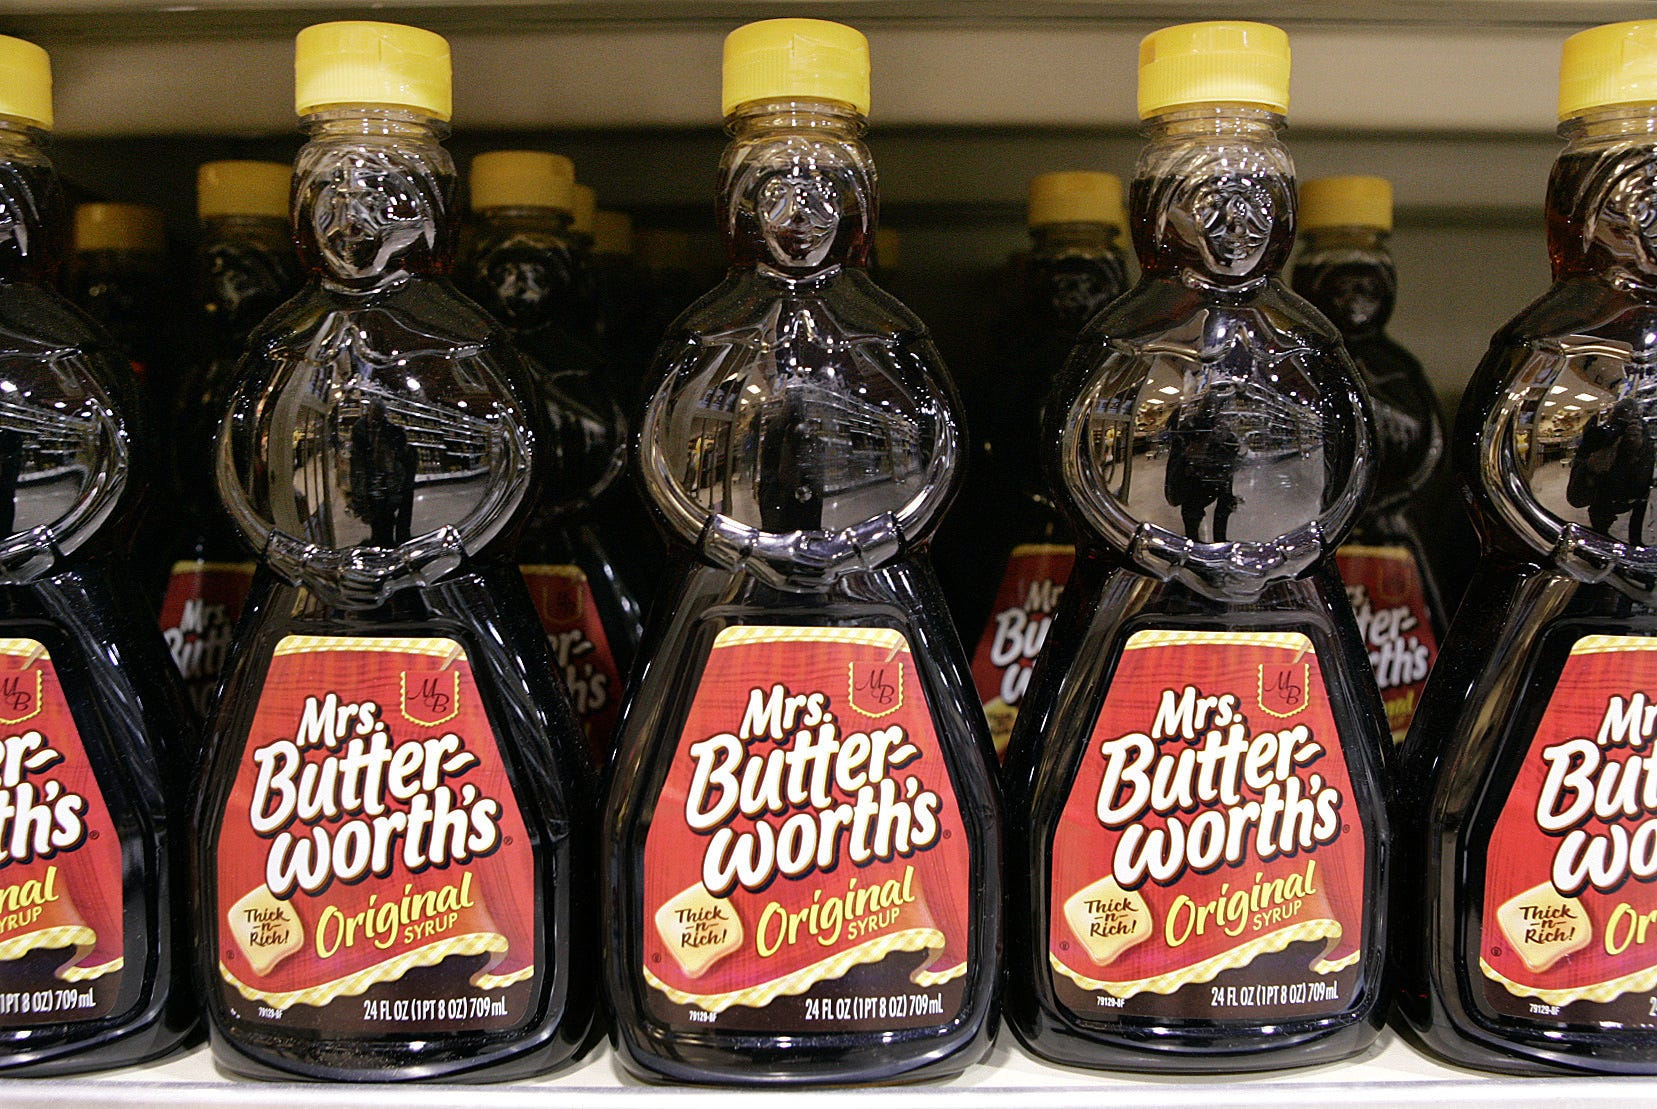 Mrs. Butterworth's brand and packaging under review after Aunt Jemima